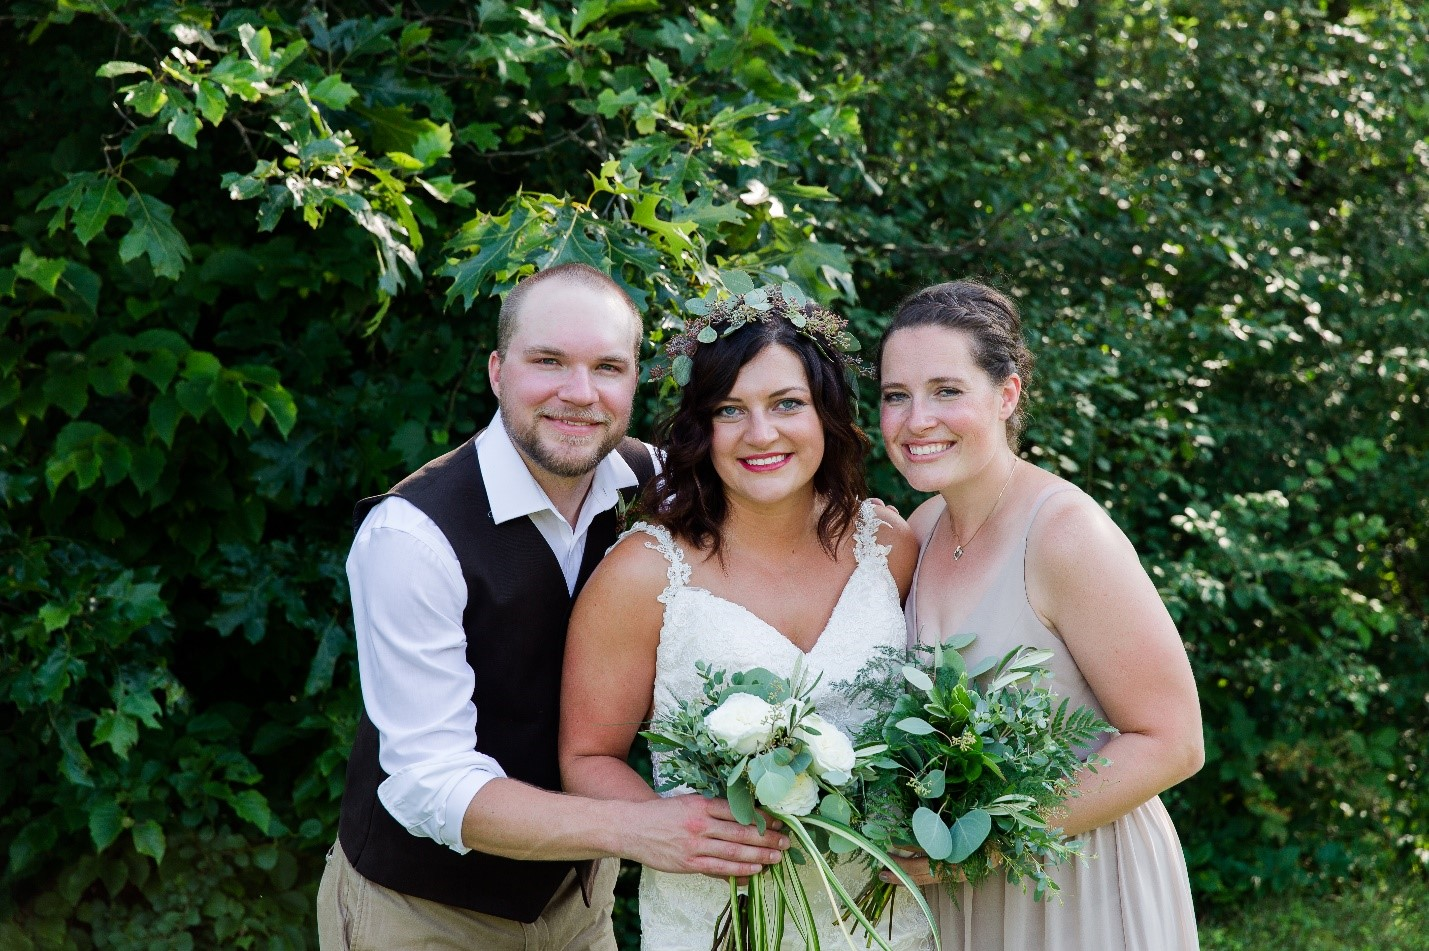 Sibling love! Sarah with her brother Craig and sister Kristi on our wedding day